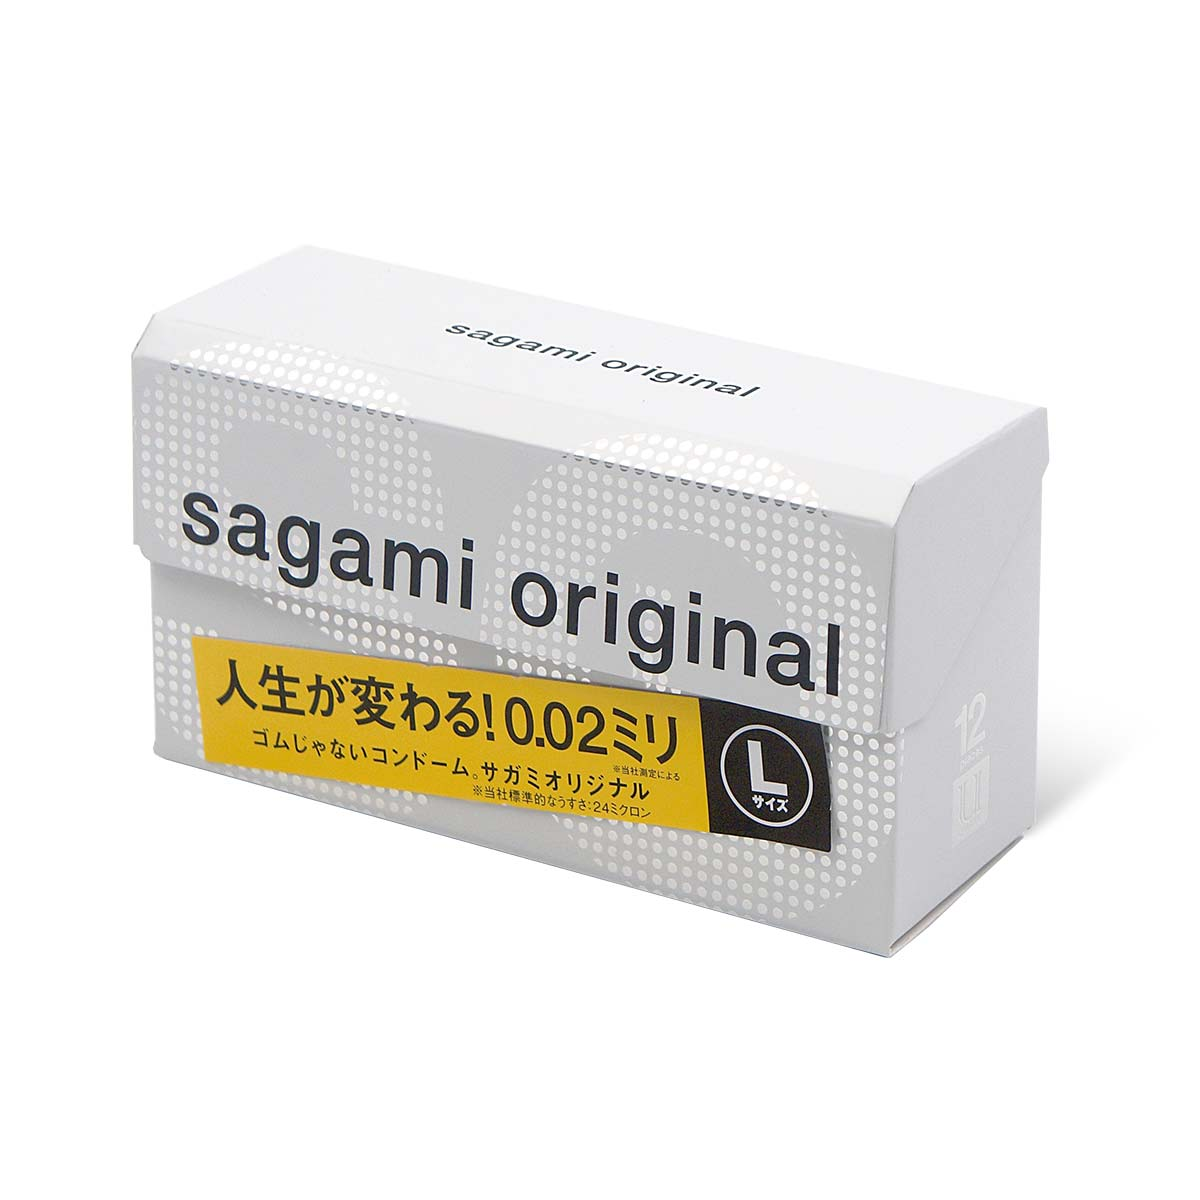 Sagami Original 0.02 L-size (2nd generation) 58mm 12's Pack PU Condom